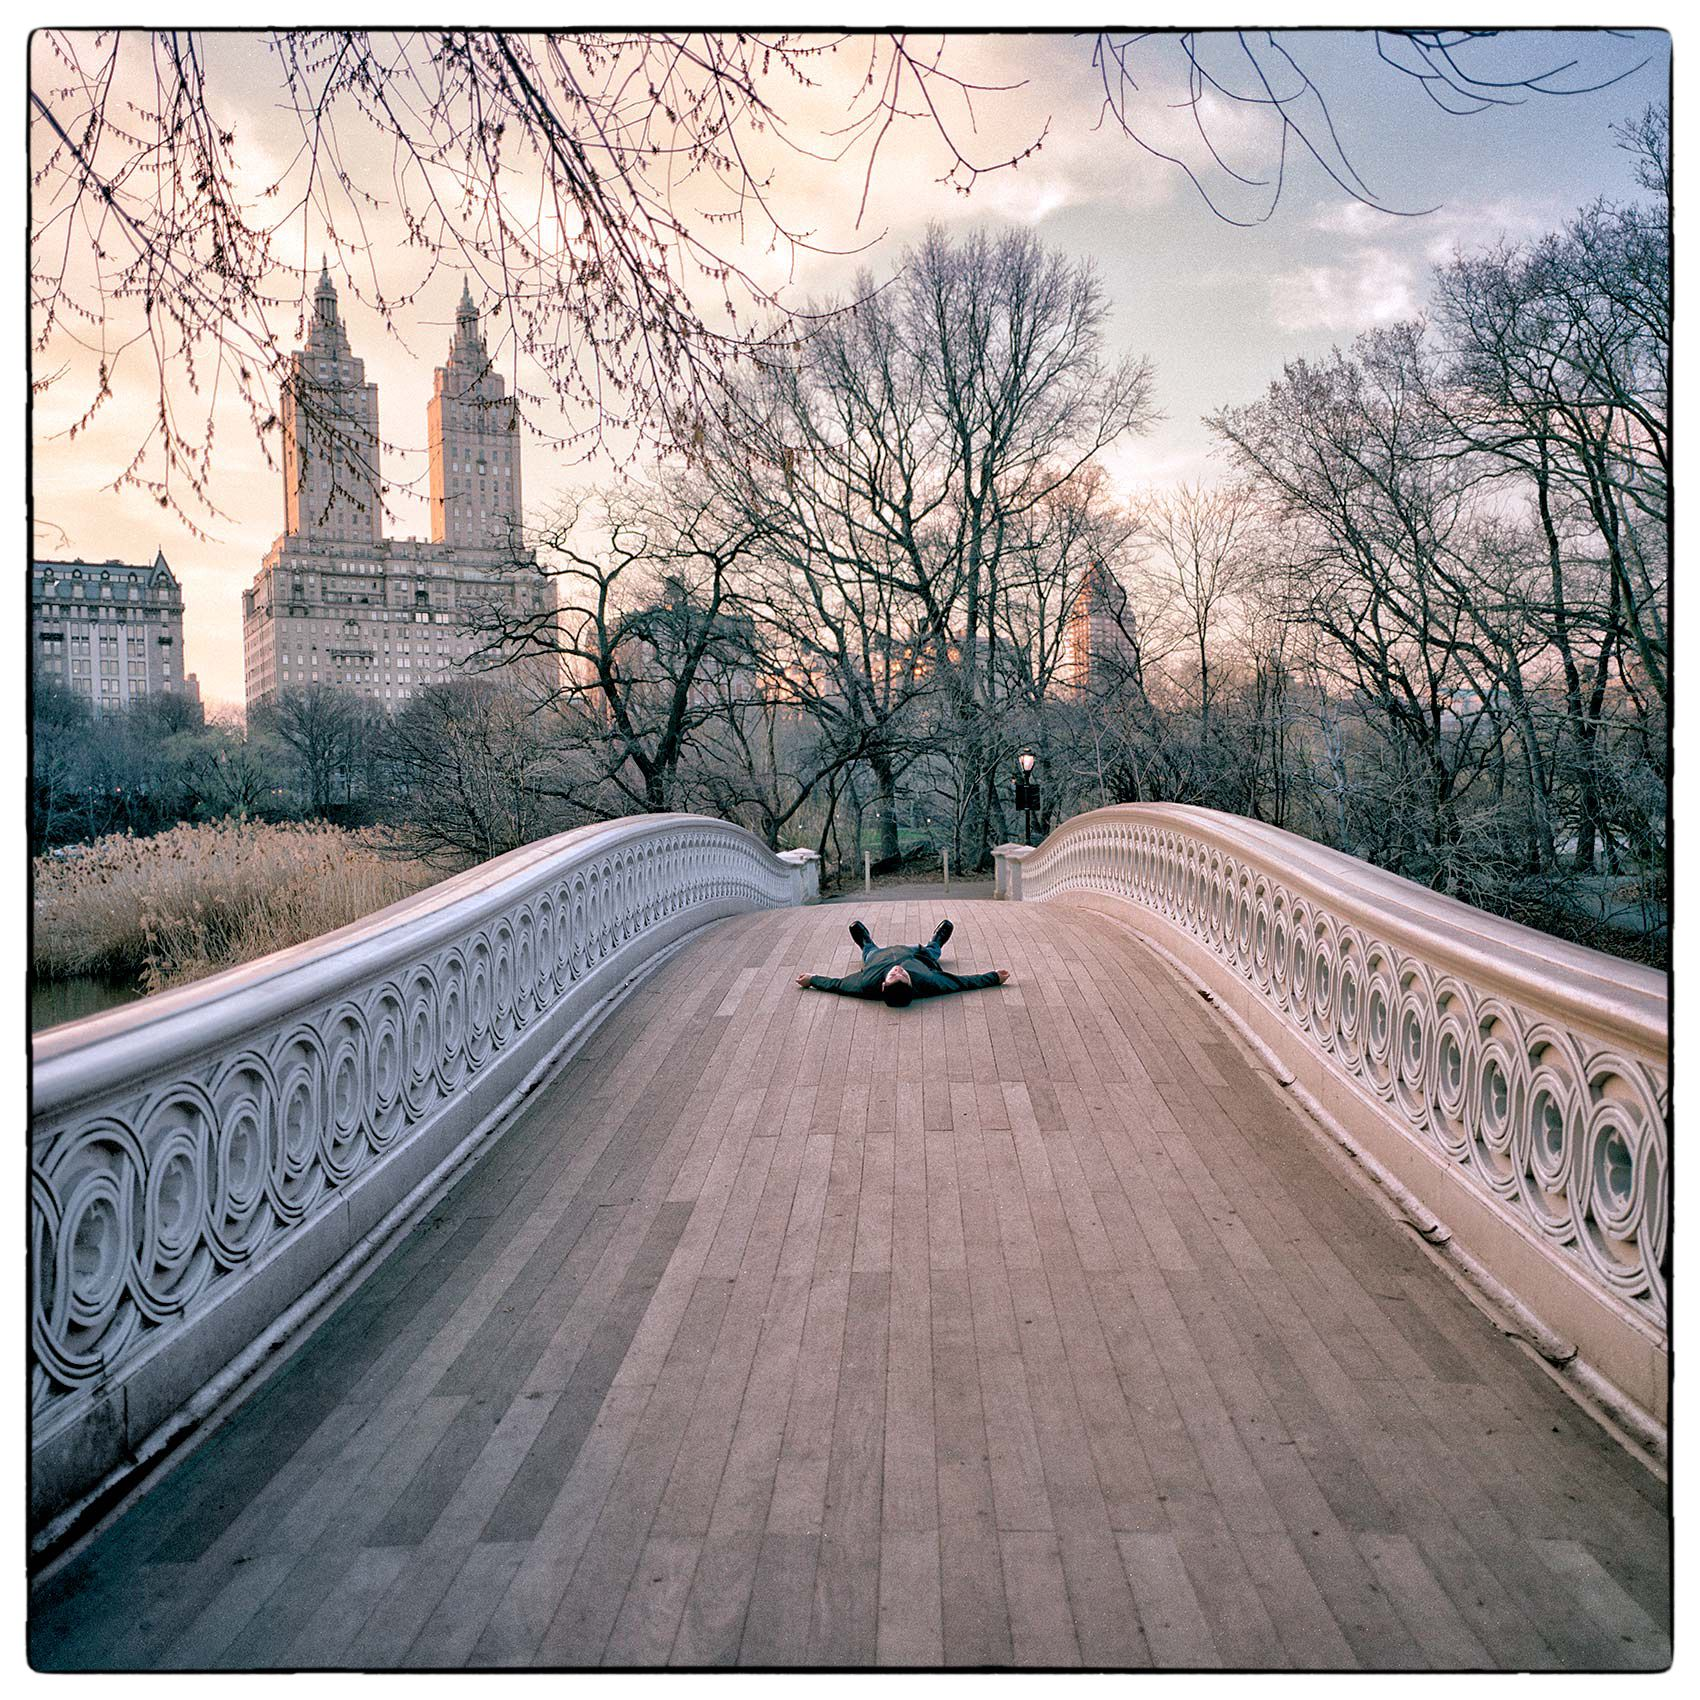 a-man-lays-in-the-middle-of-a-bridge-in-new-yorks-central-park-creating-an-artistic-photo-in-the-late-afternoon